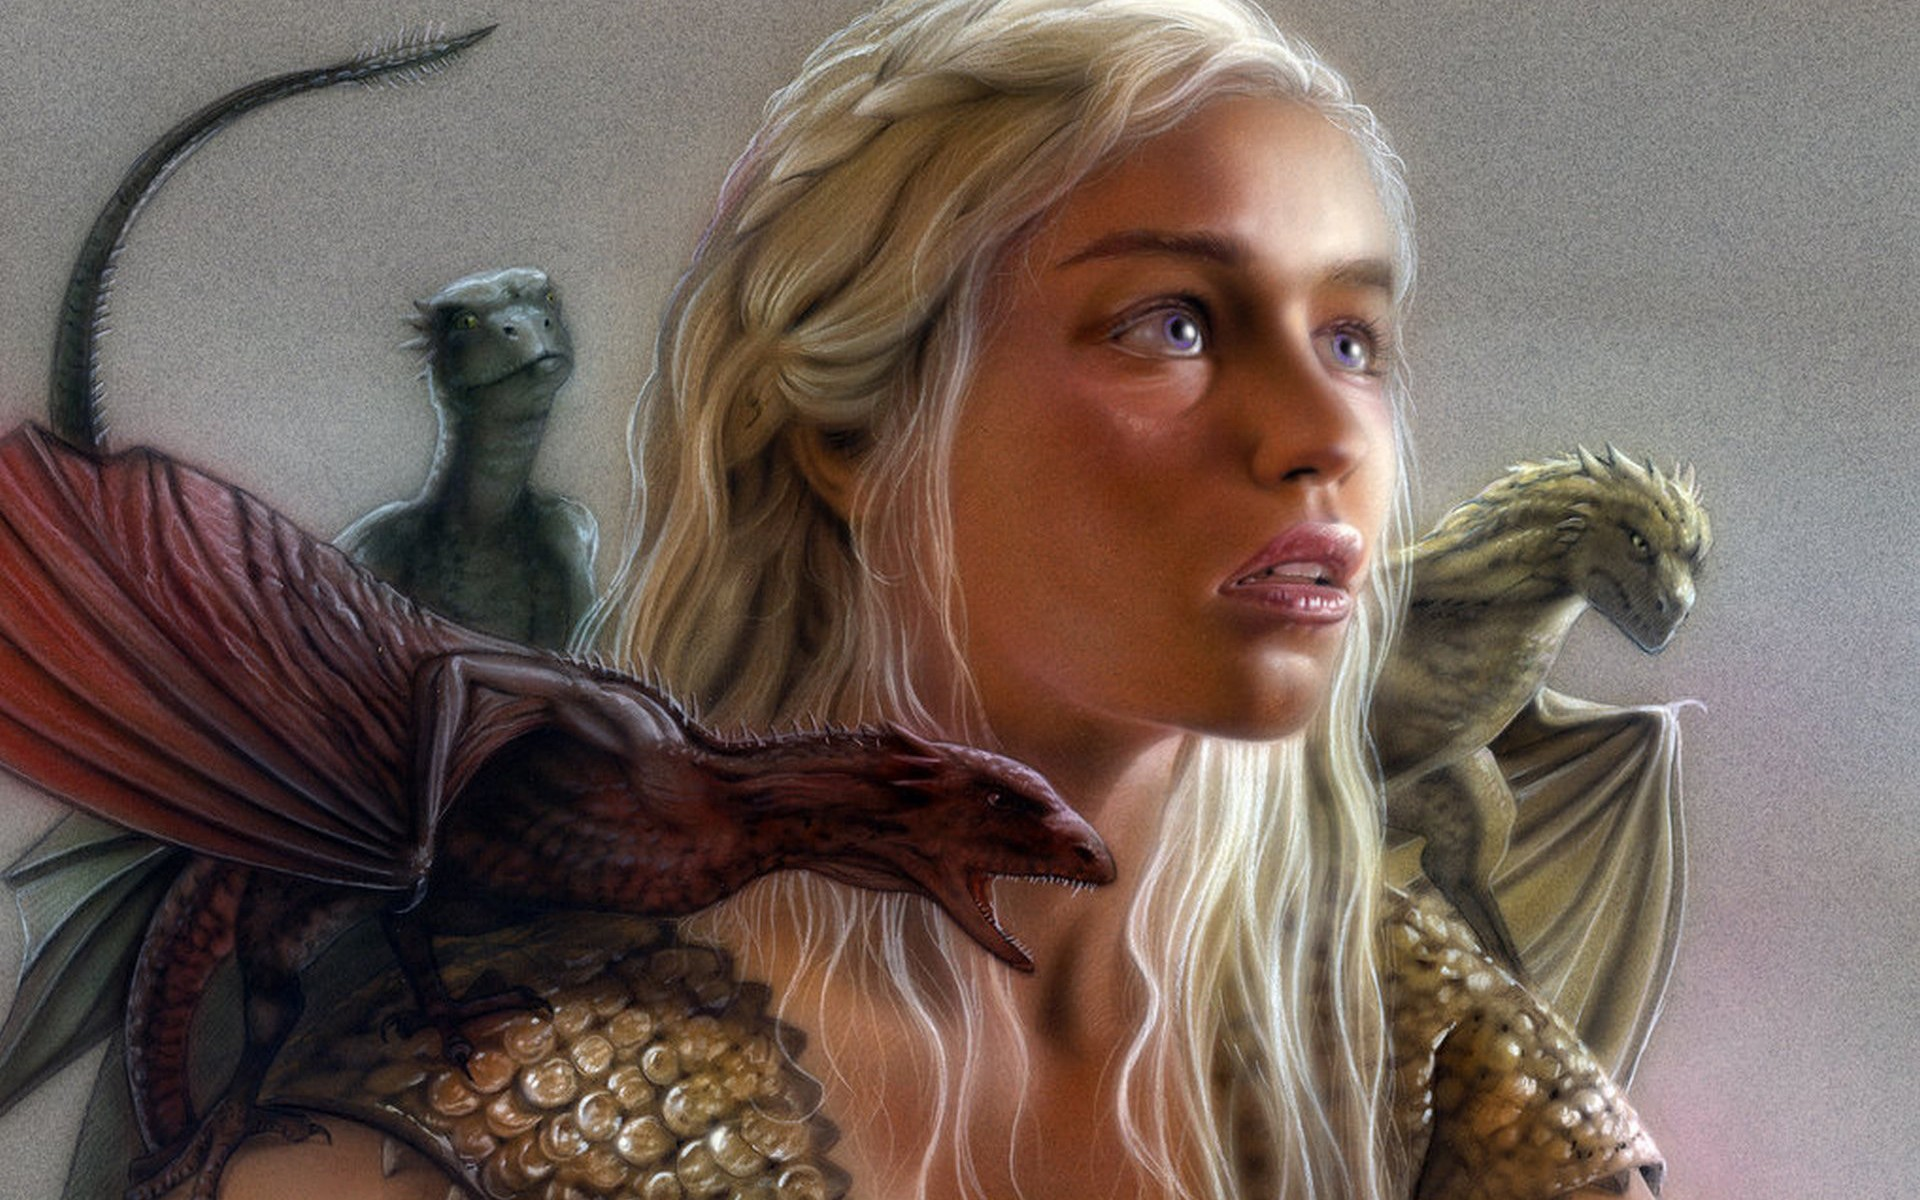 Daenerys-Targaryen-Game-Of-Thrones-TV-Series-gratuit